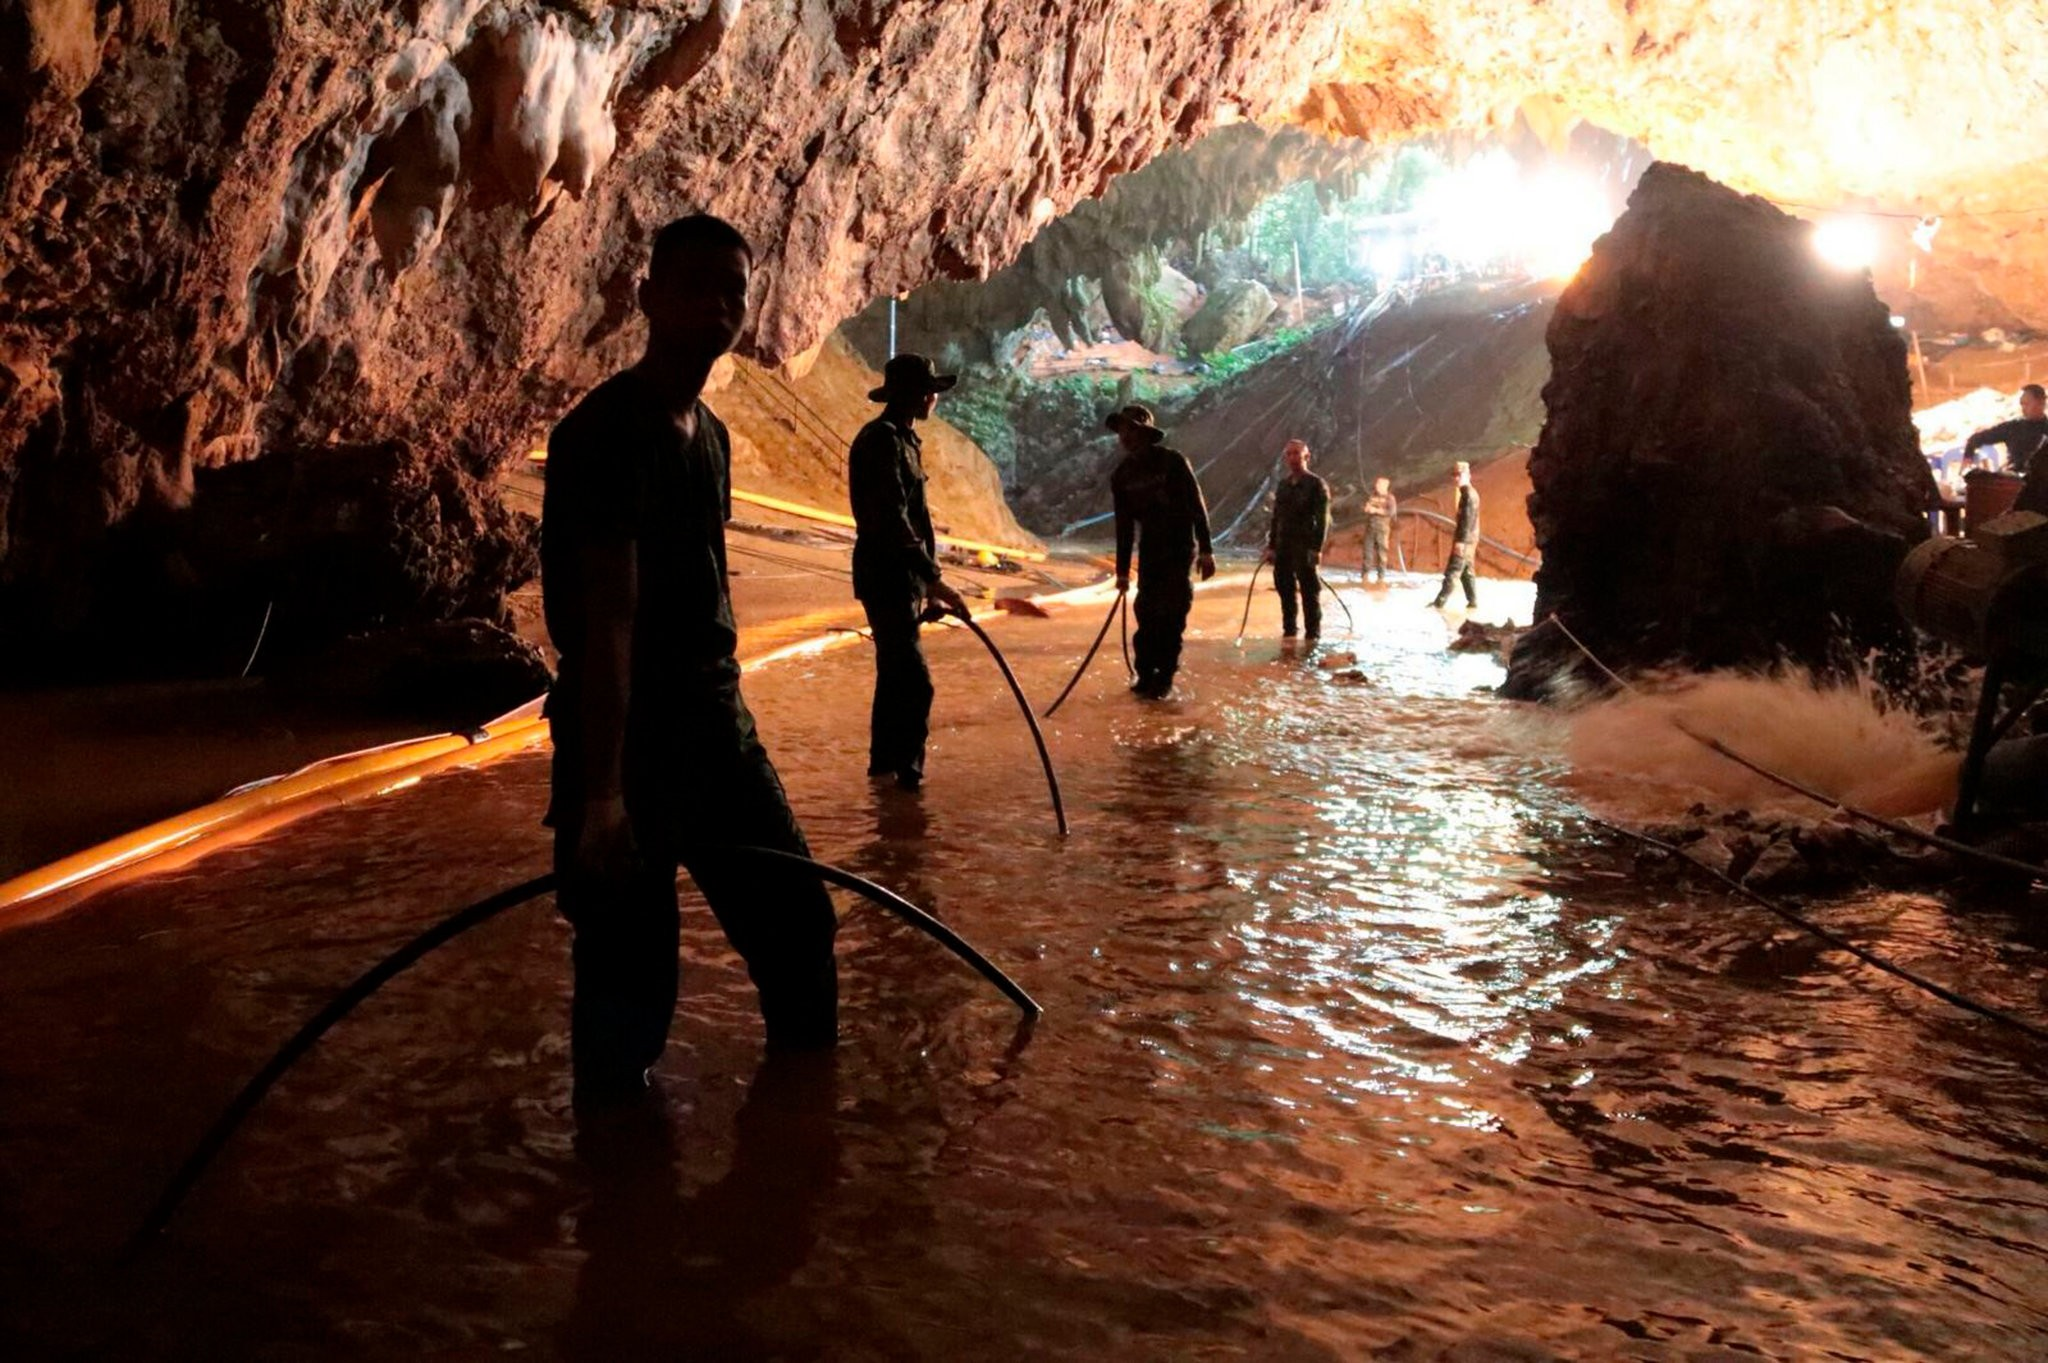 Thai rescue teams arranging a water-pumping system at the entrance to a flooded cave complex where 12 boys and their soccer coach were trapped in Chiang Rai, Thailand. (Photo by Royal Thai Navy)